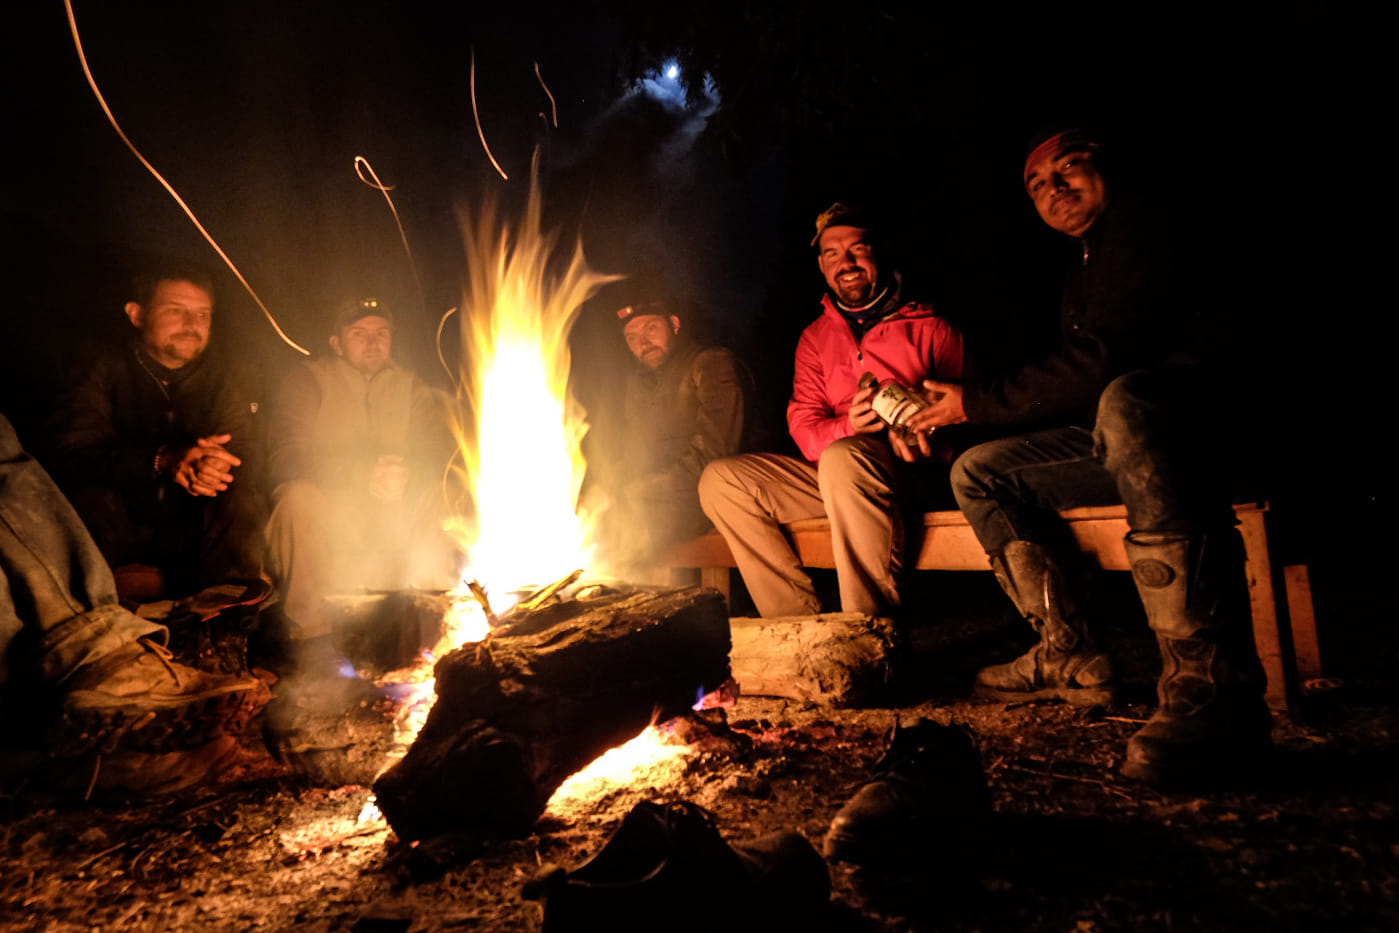 The best ideas are alway shared around a fire. Here our core team chats about the work ahead while traveling deep into Nepal's tallest Himalayan peaks.